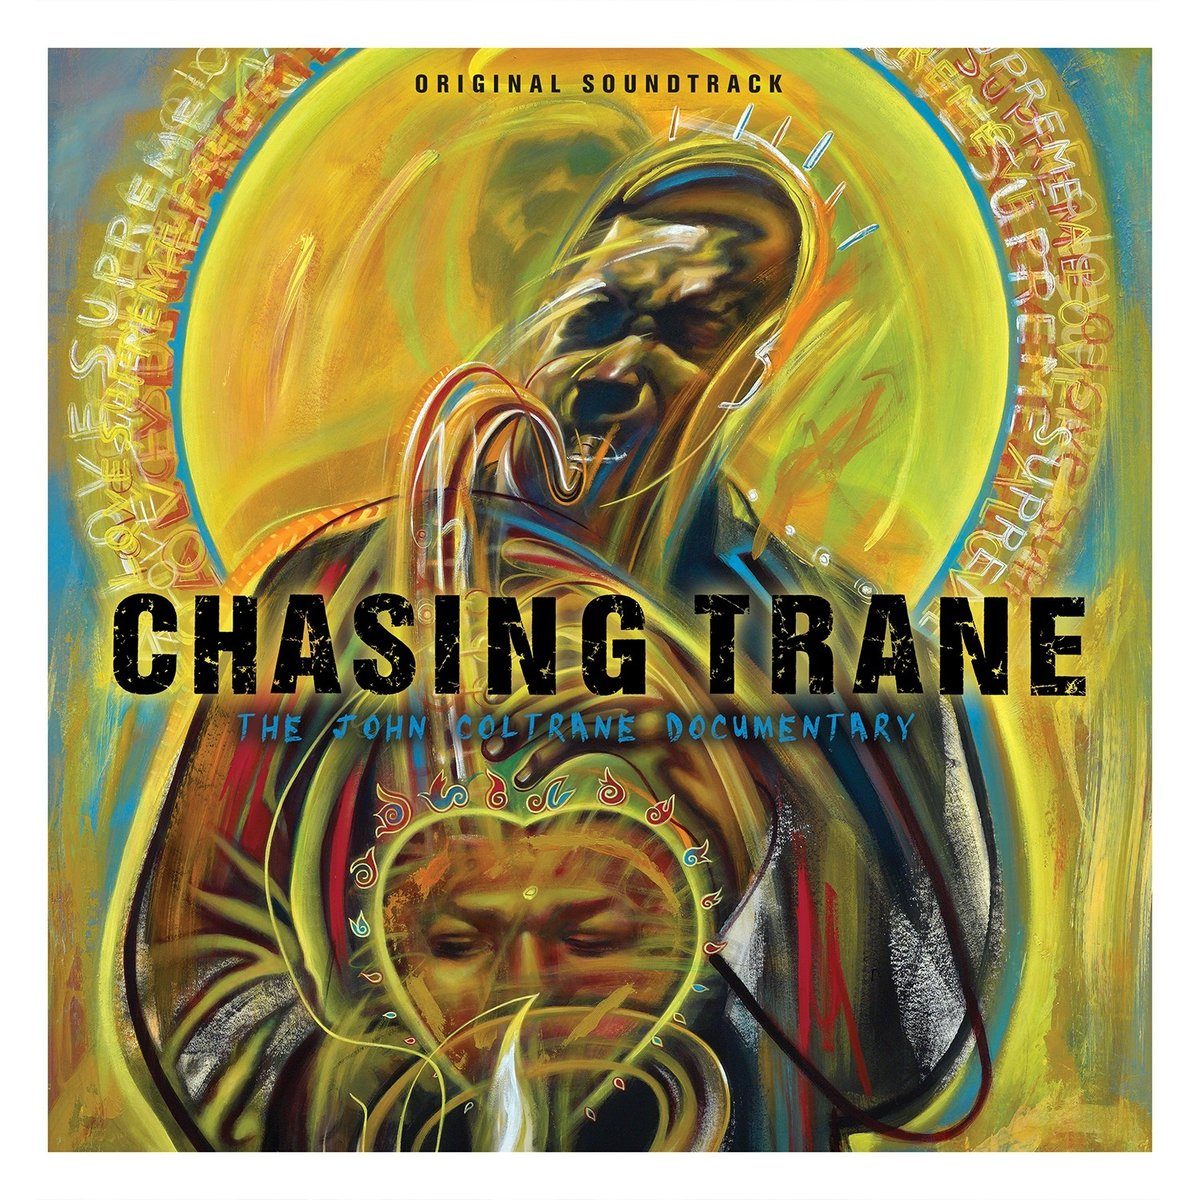 Chasing Trane. The John Coltrane Documentary